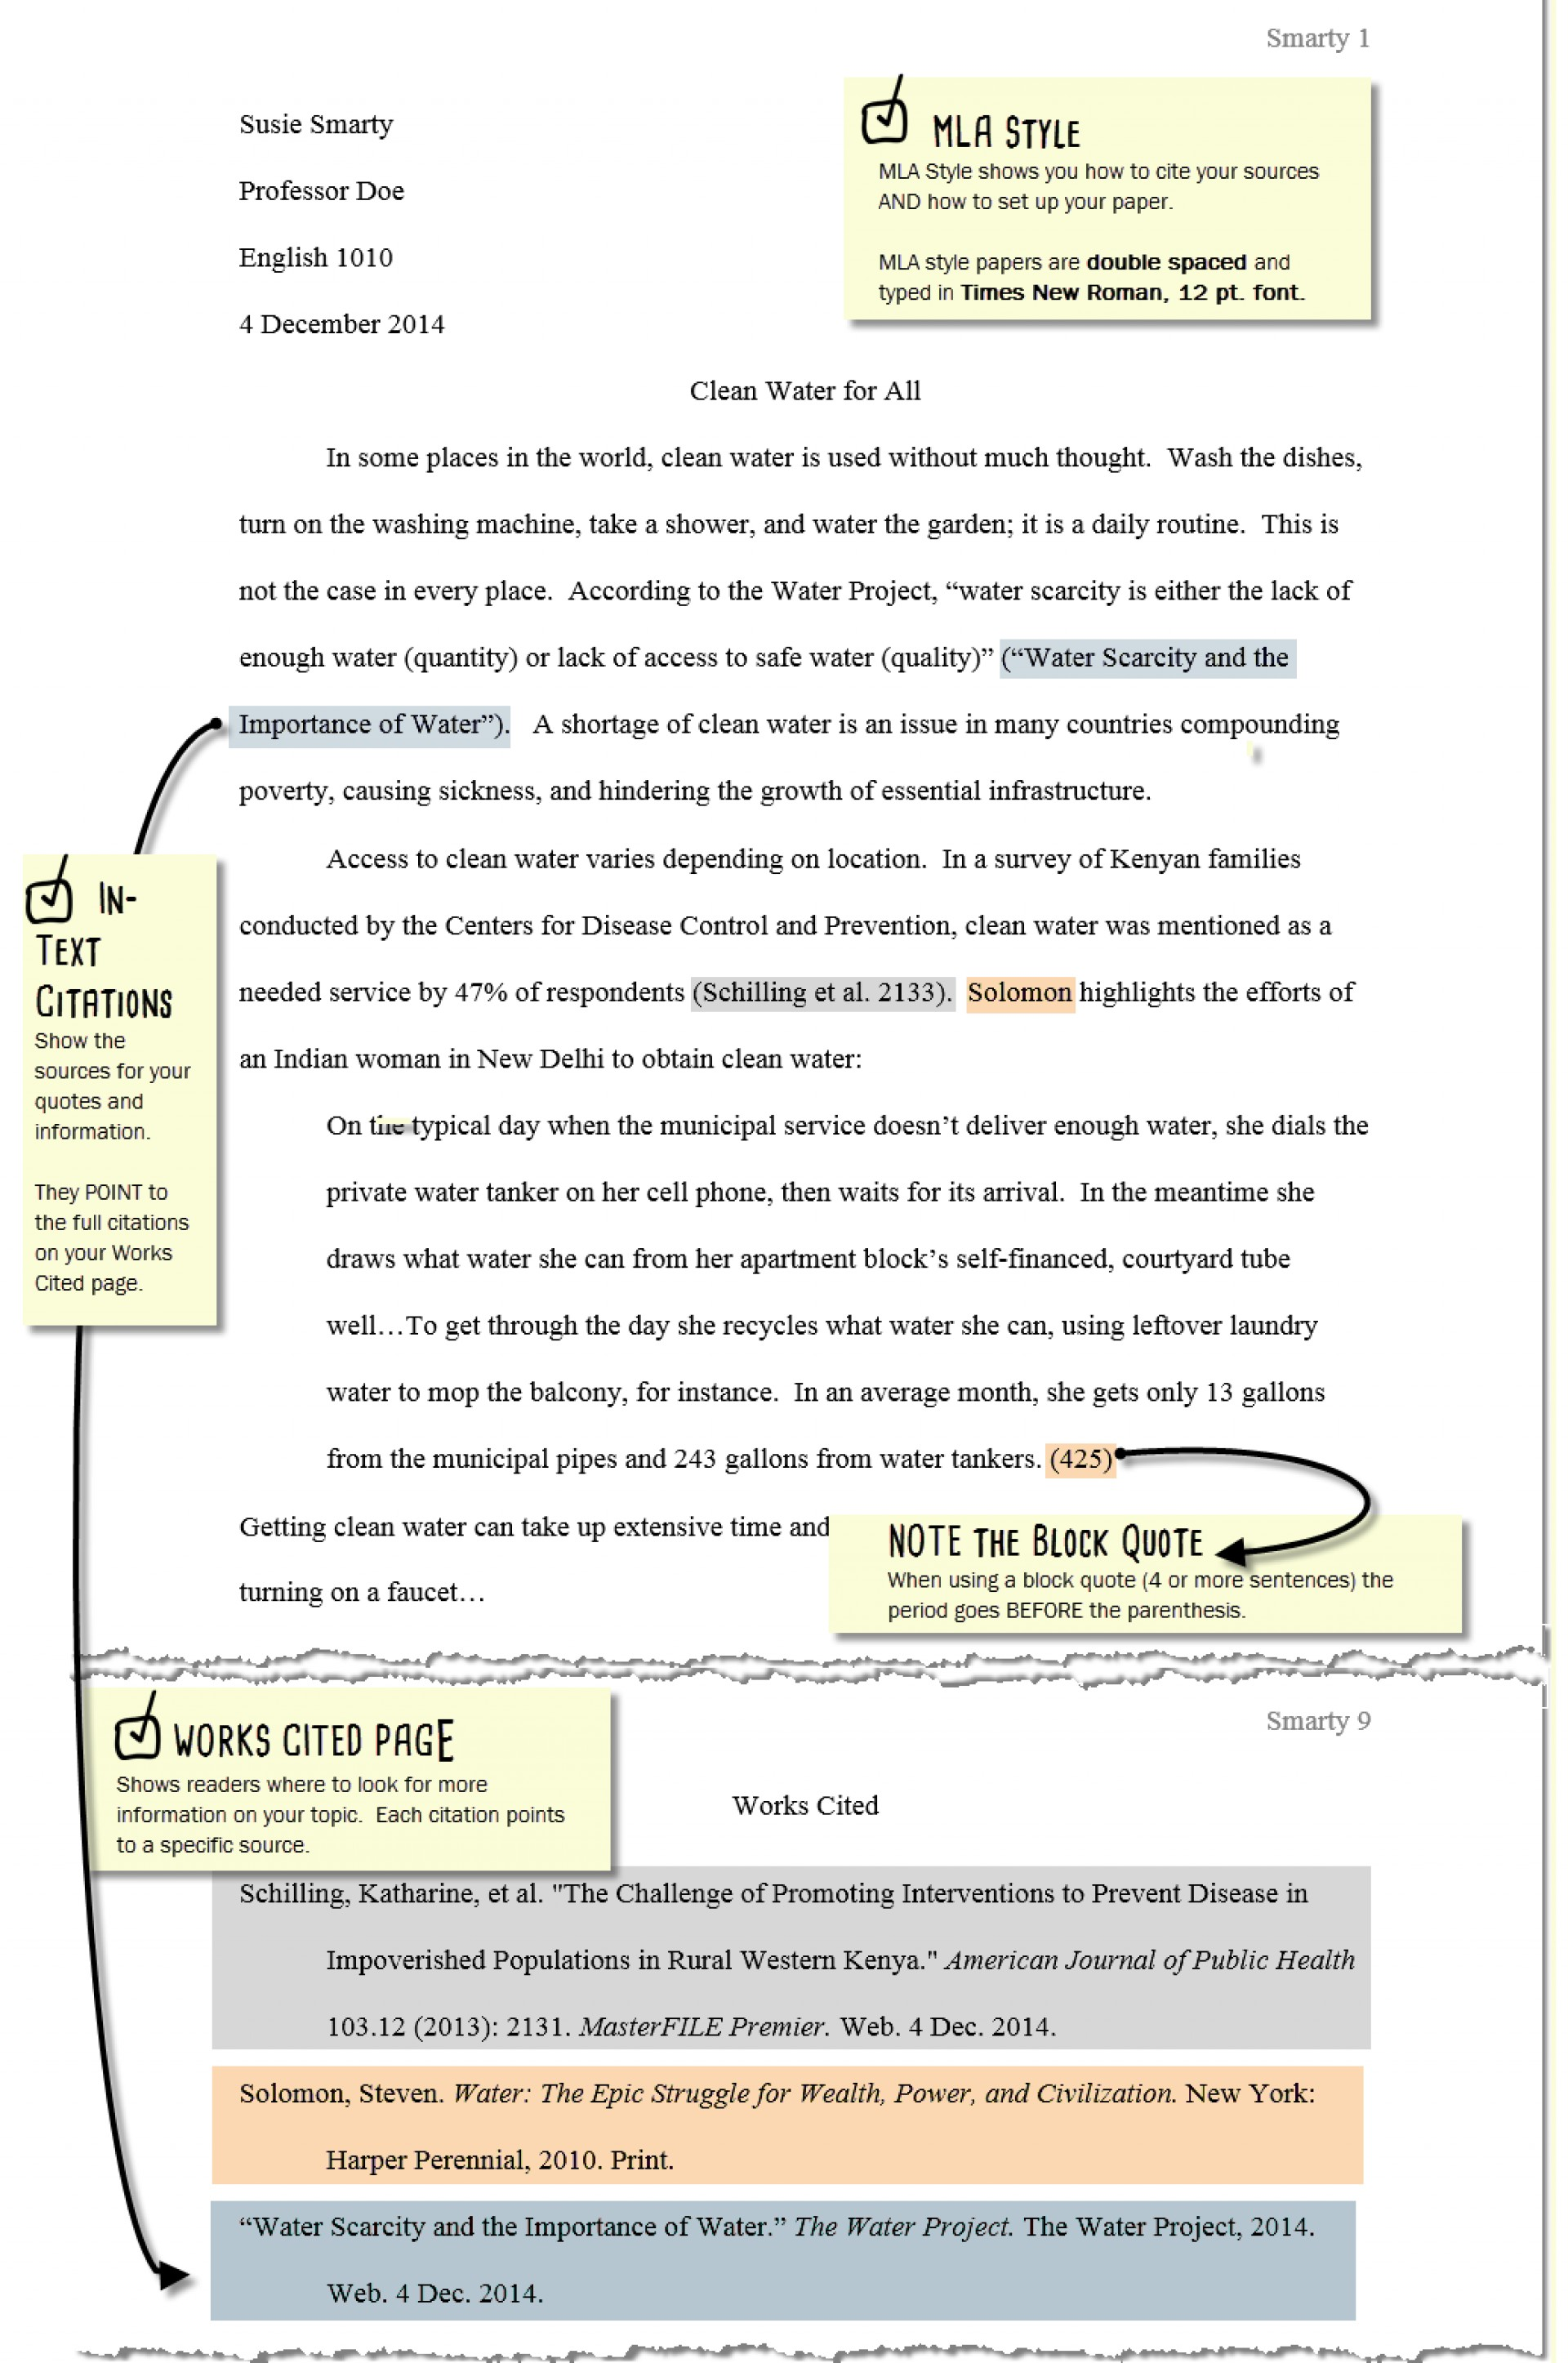 006 How To Cite Quotes In Research Paper Mla Shocking 1920